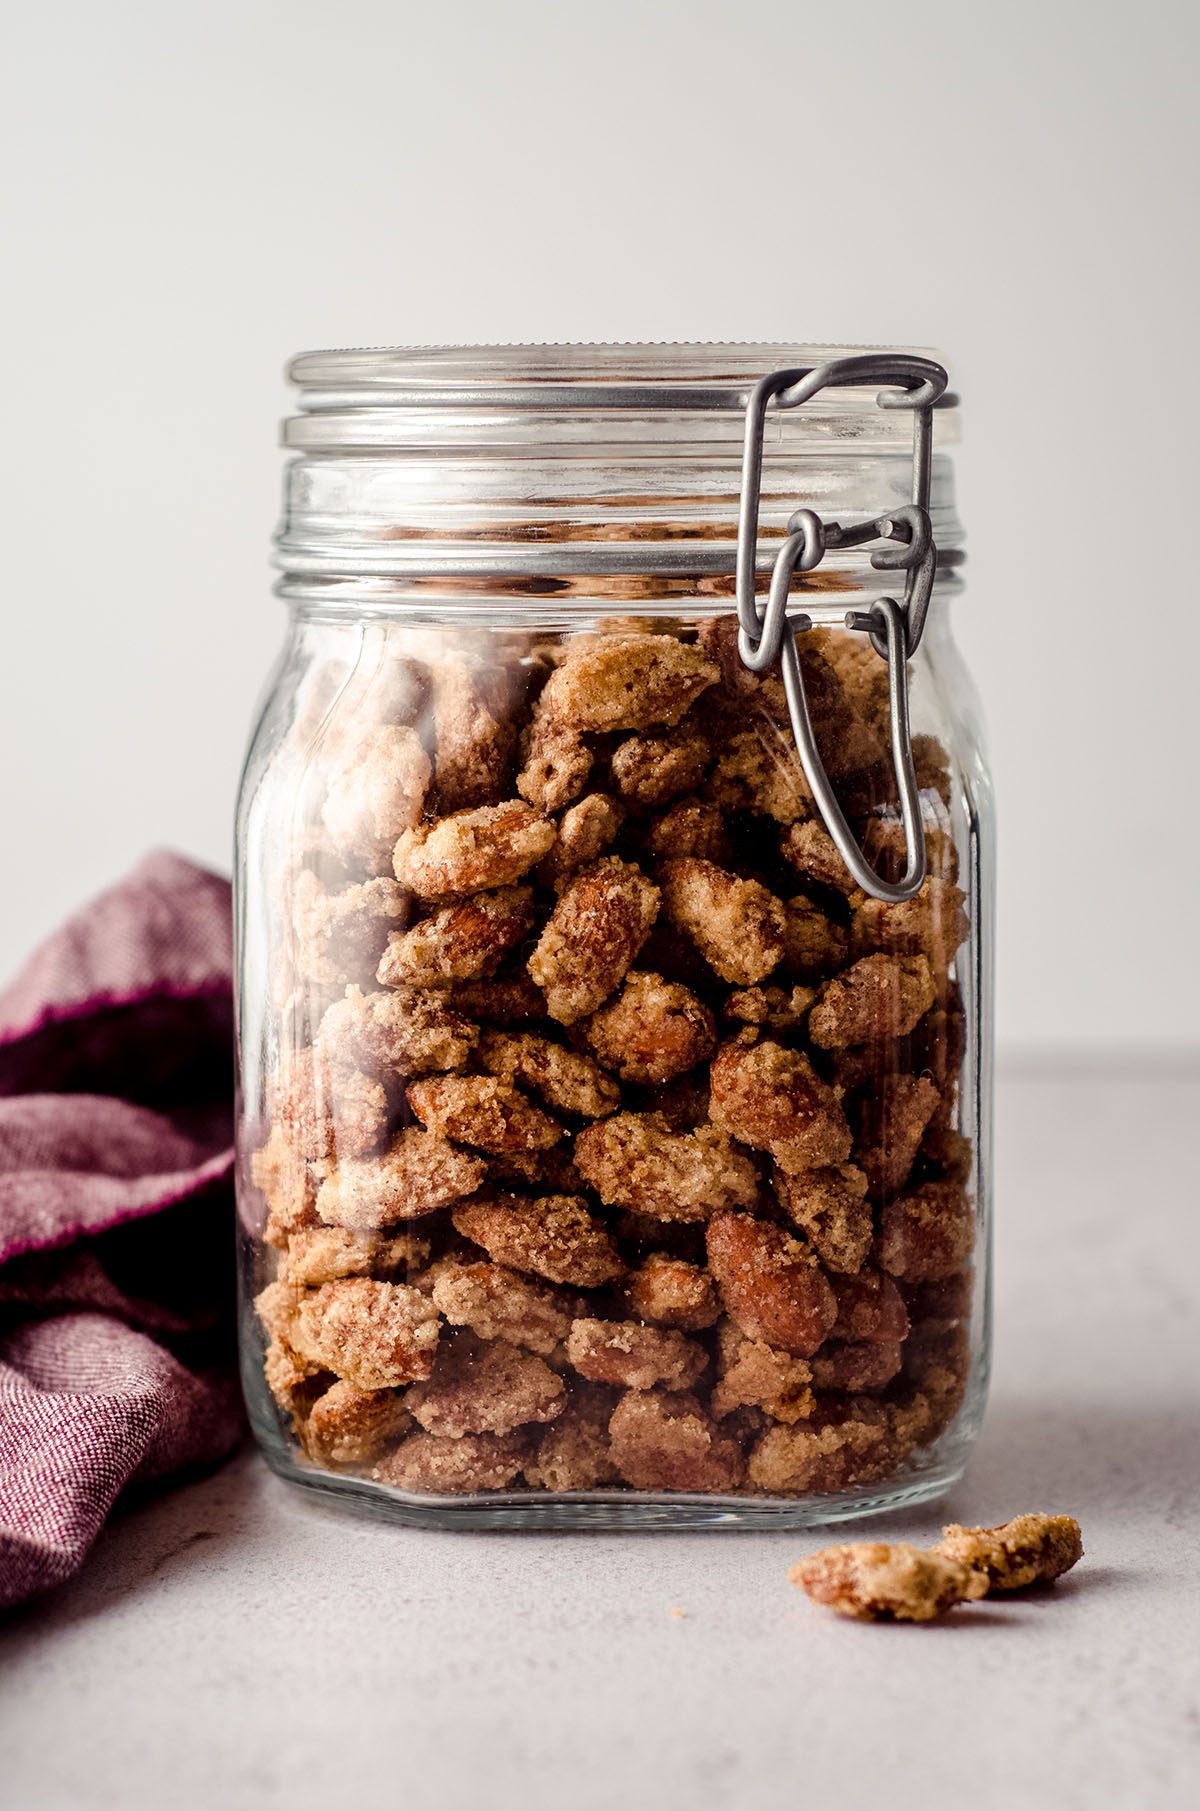 candied almonds in a jar with a plum colored kitchen towel next to it and almonds in the foreground